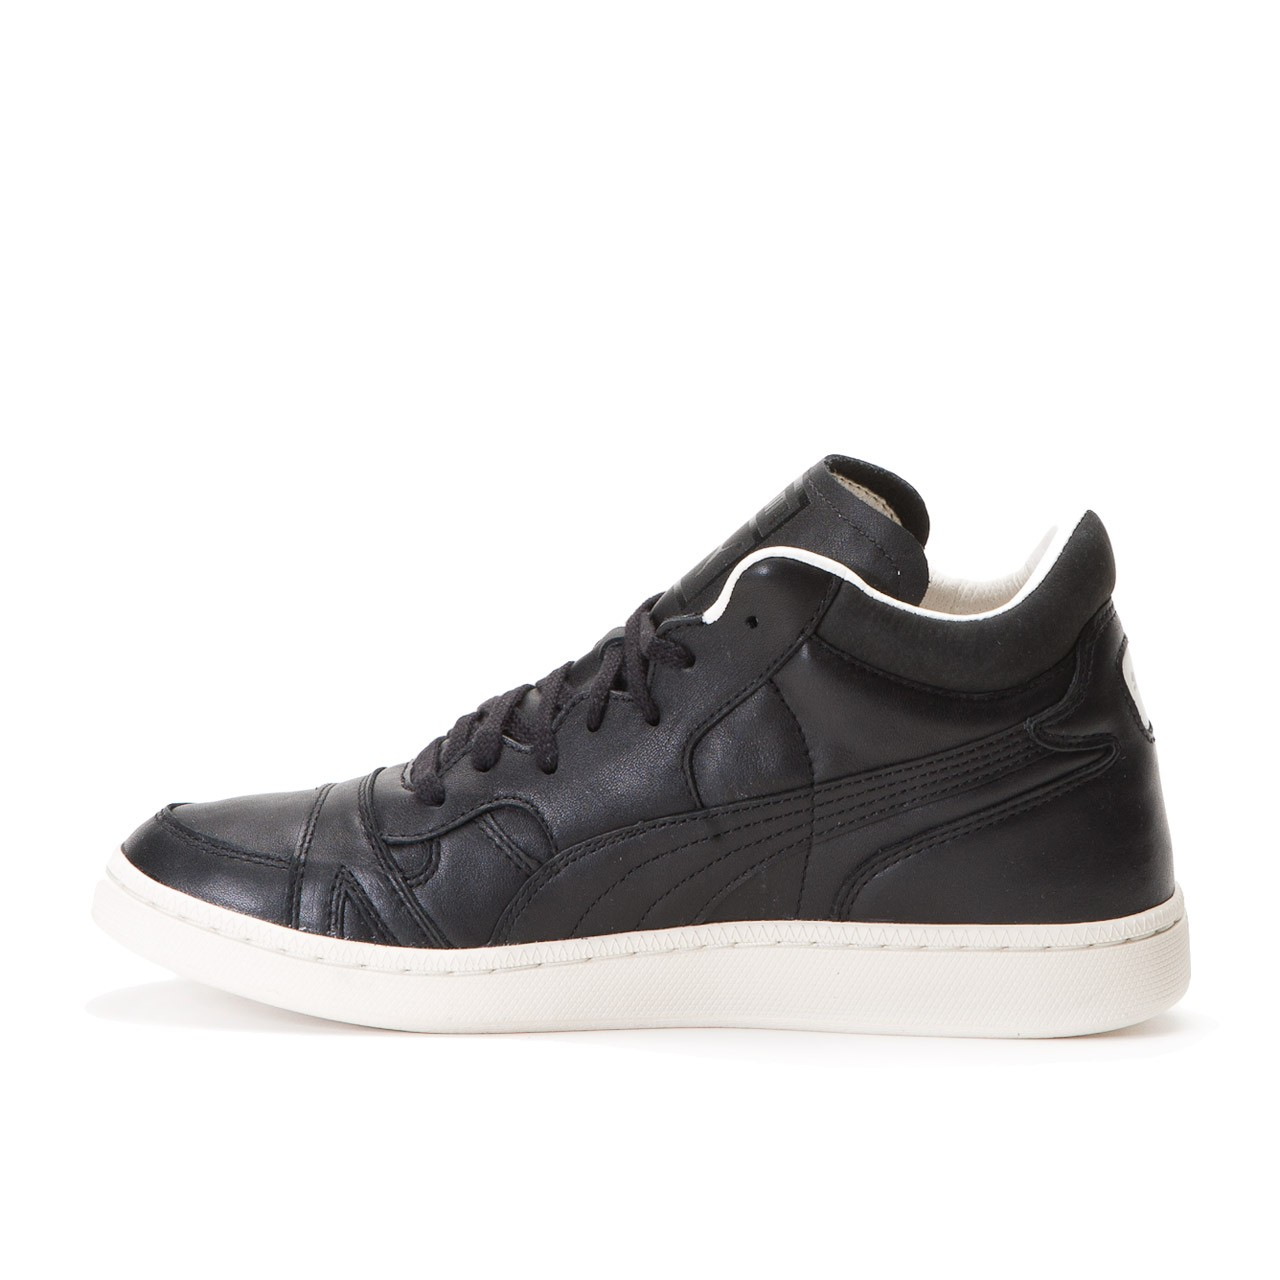 038aa1dfa535 This limited edition leather clad Puma Becker will serve as the finishing  touch to your outfit